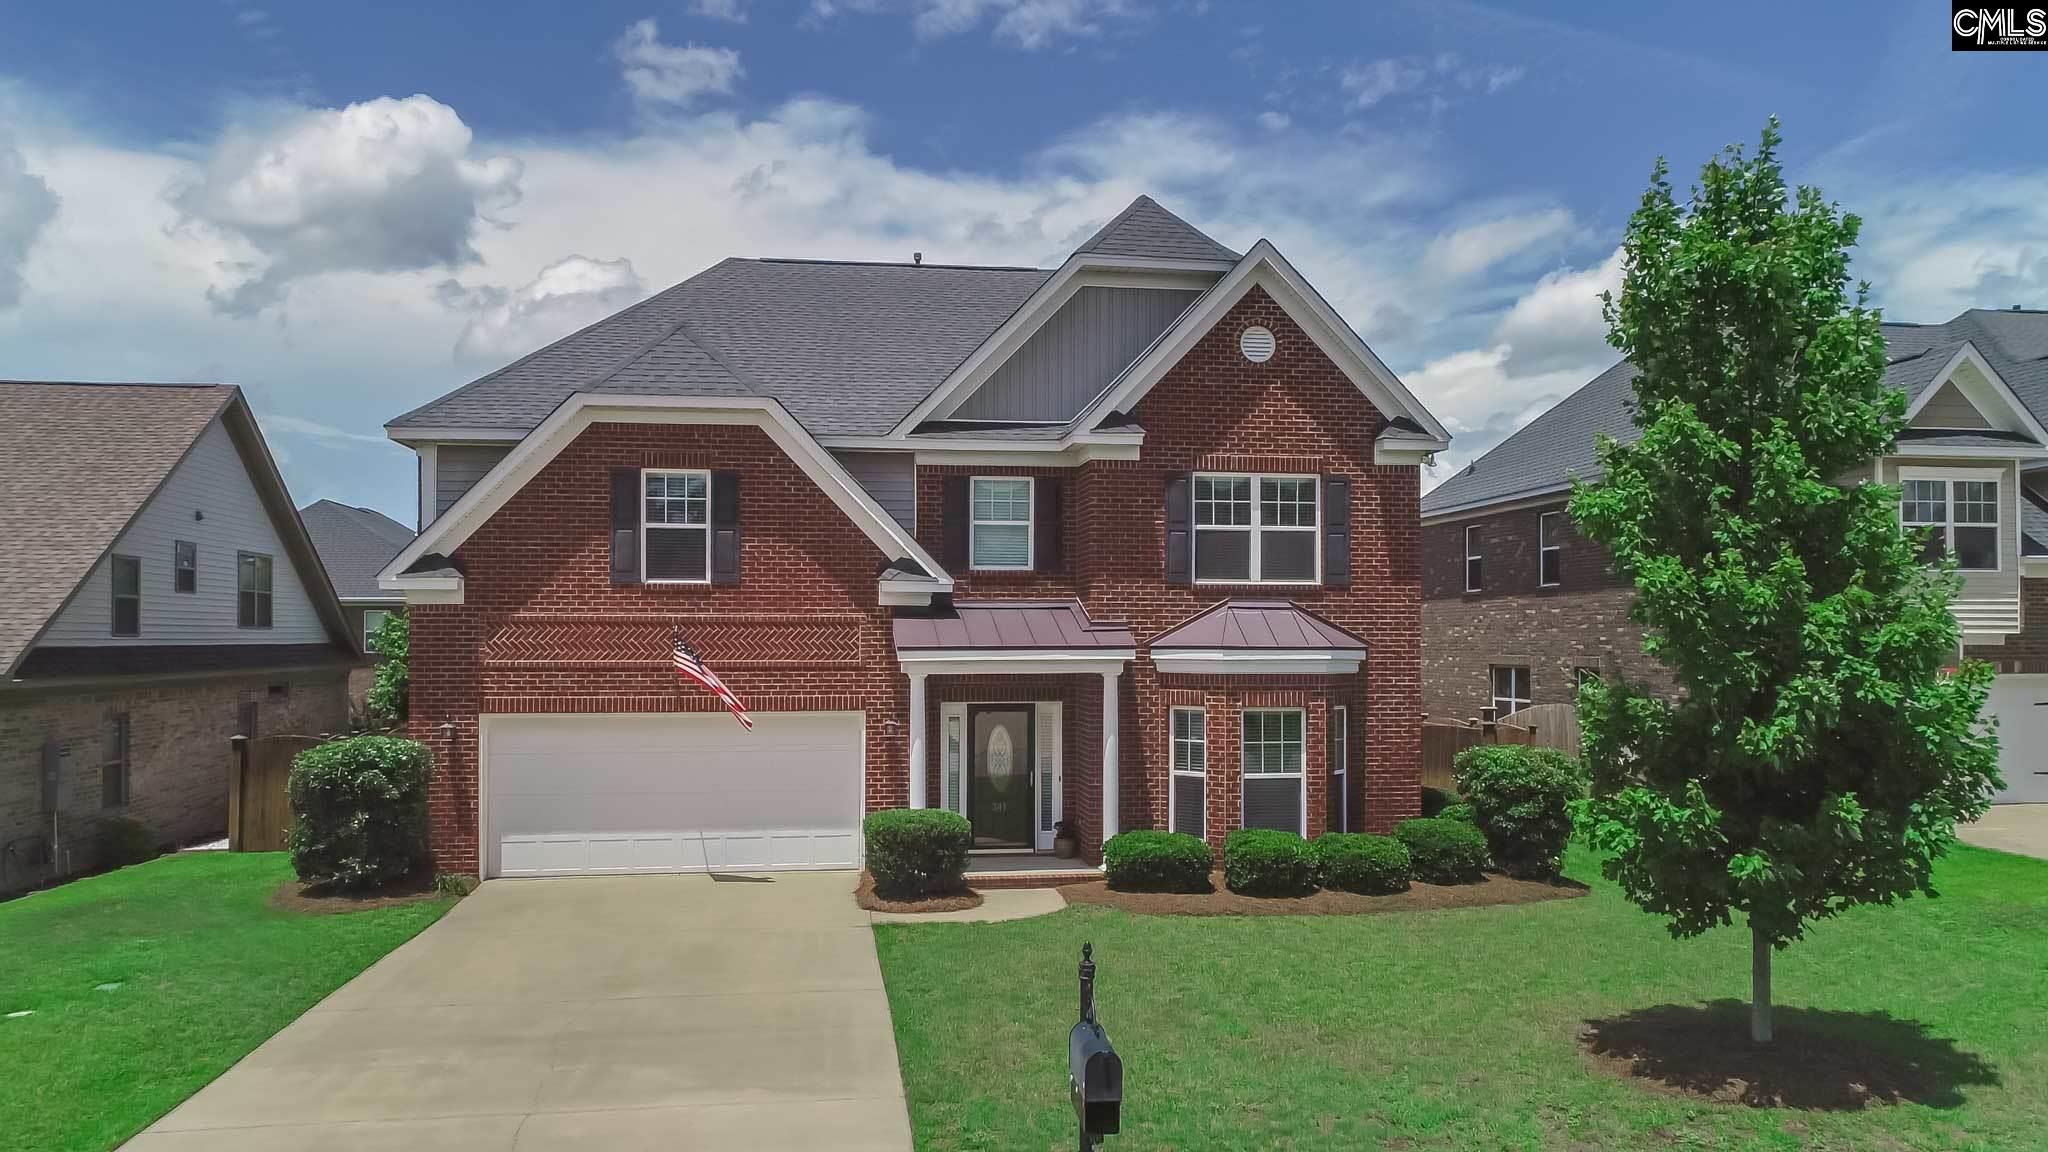 341 Pisgah Flats Lexington, SC 29072